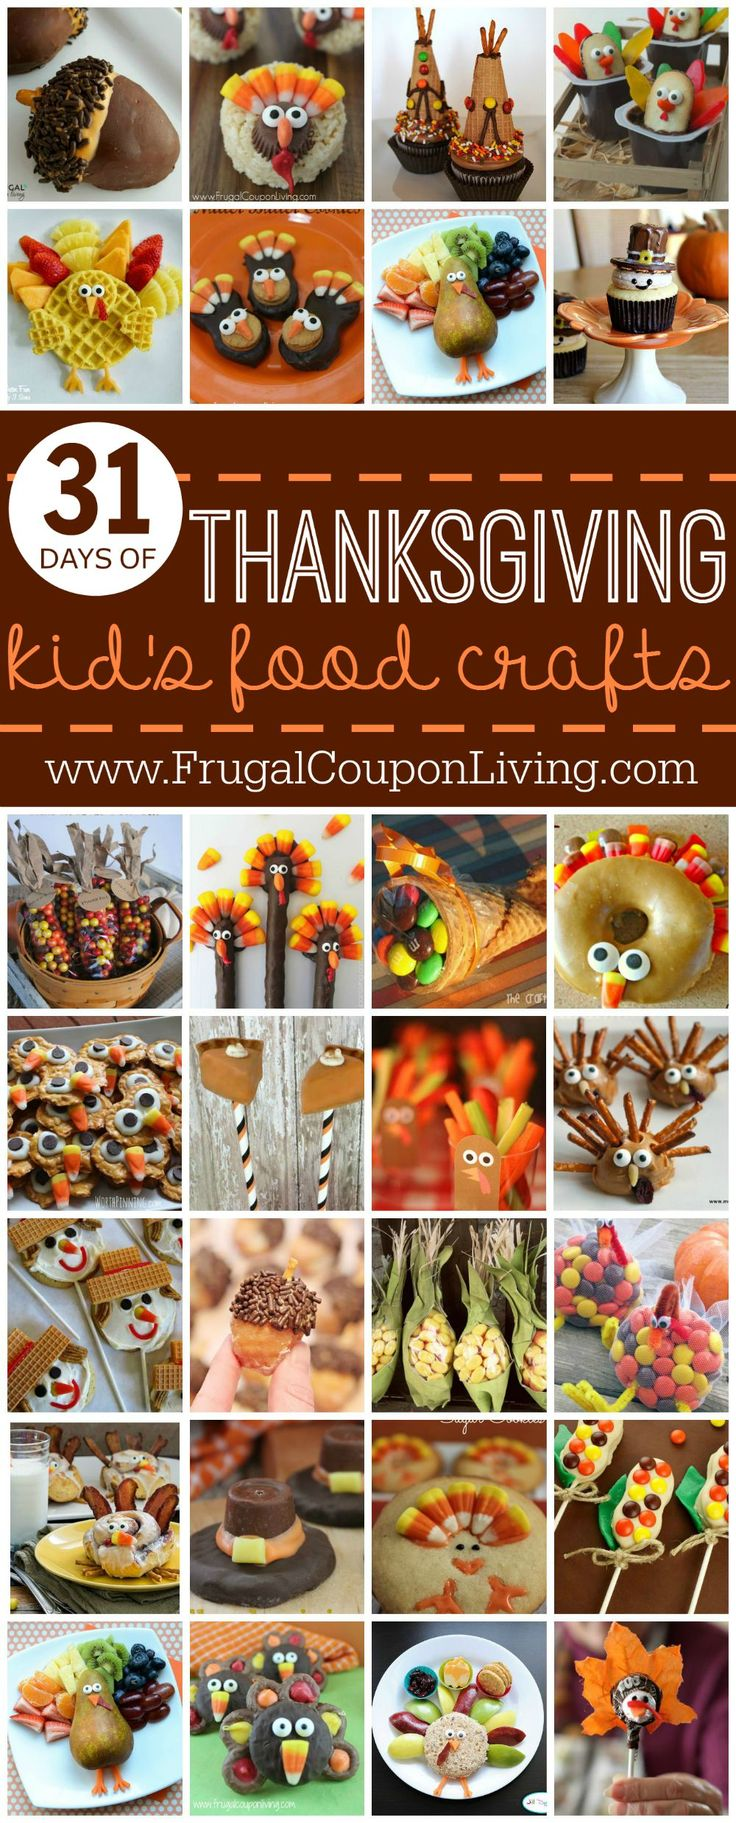 95 best Thanksgiving images on Pinterest | Thanksgiving activities ...